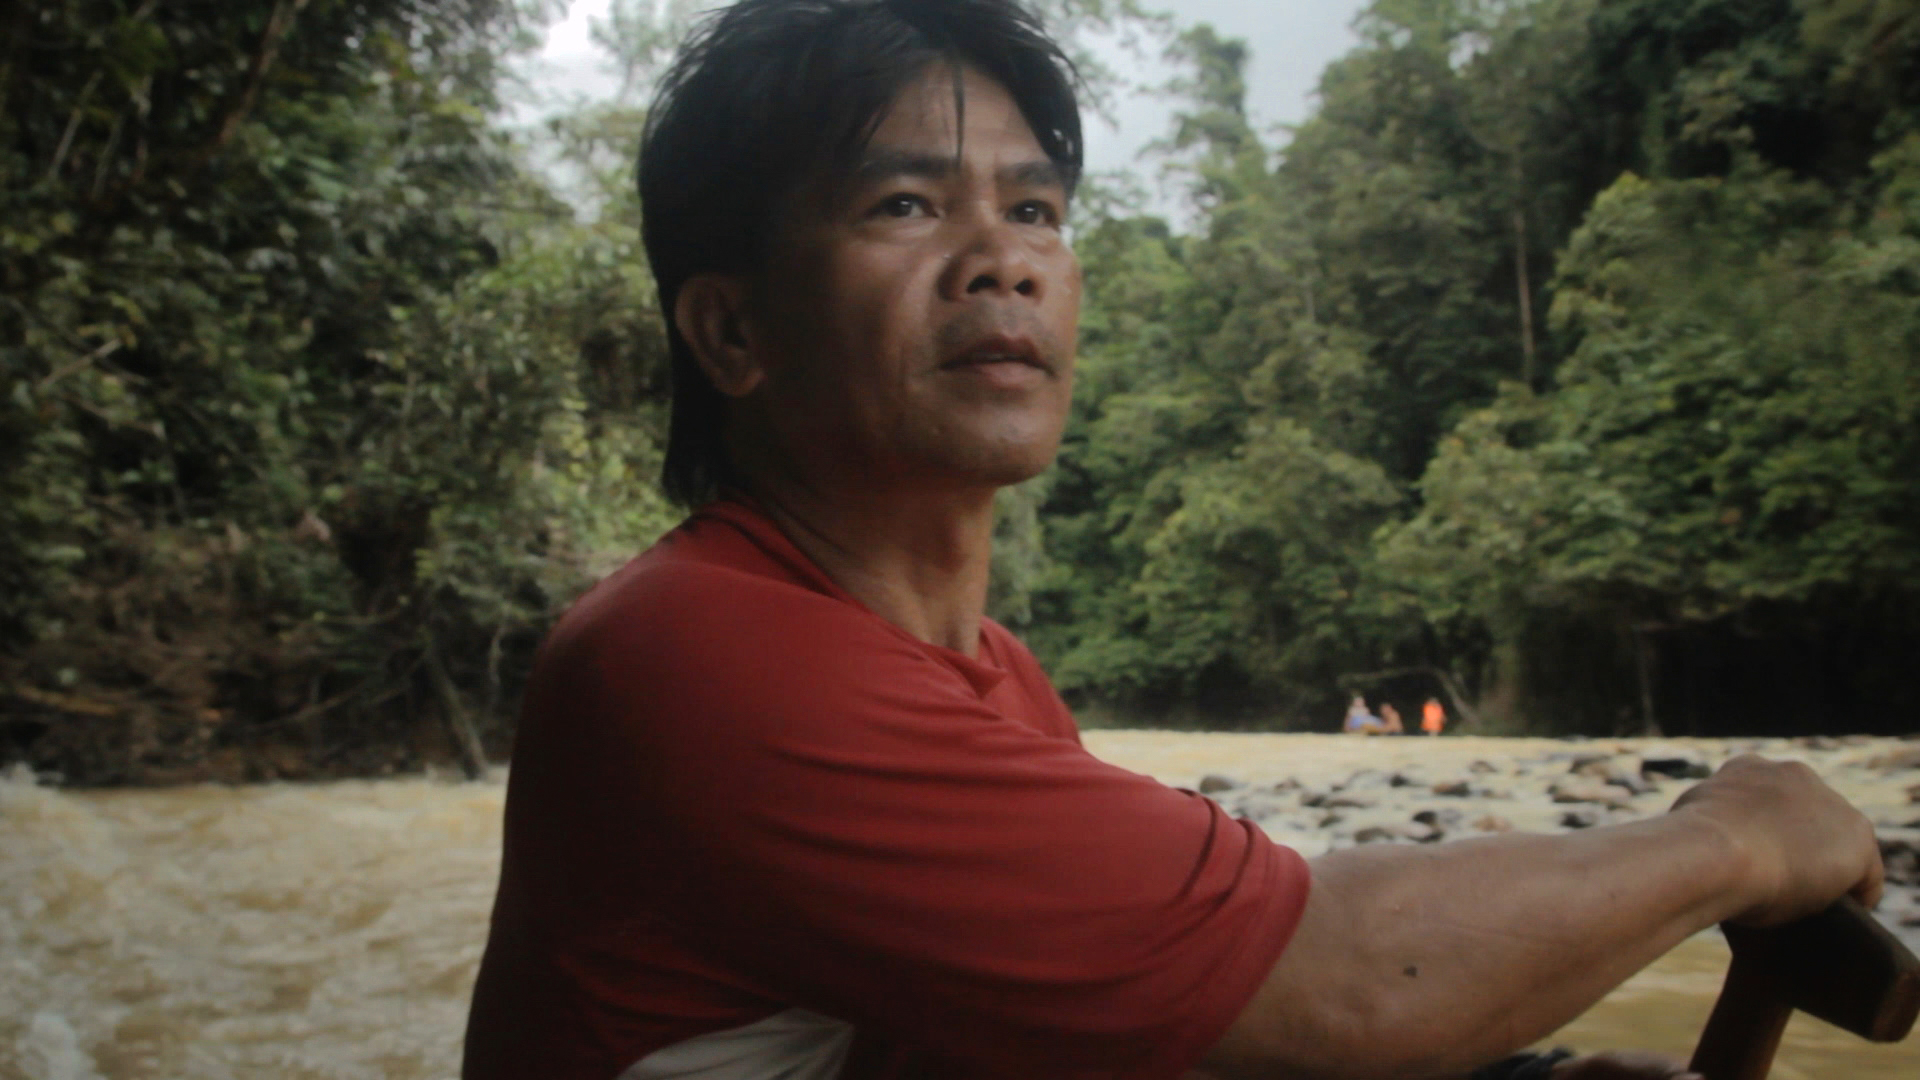 ATimeToSwim_film still_mutang on the river_photo by Vincent Gonneville.jpg